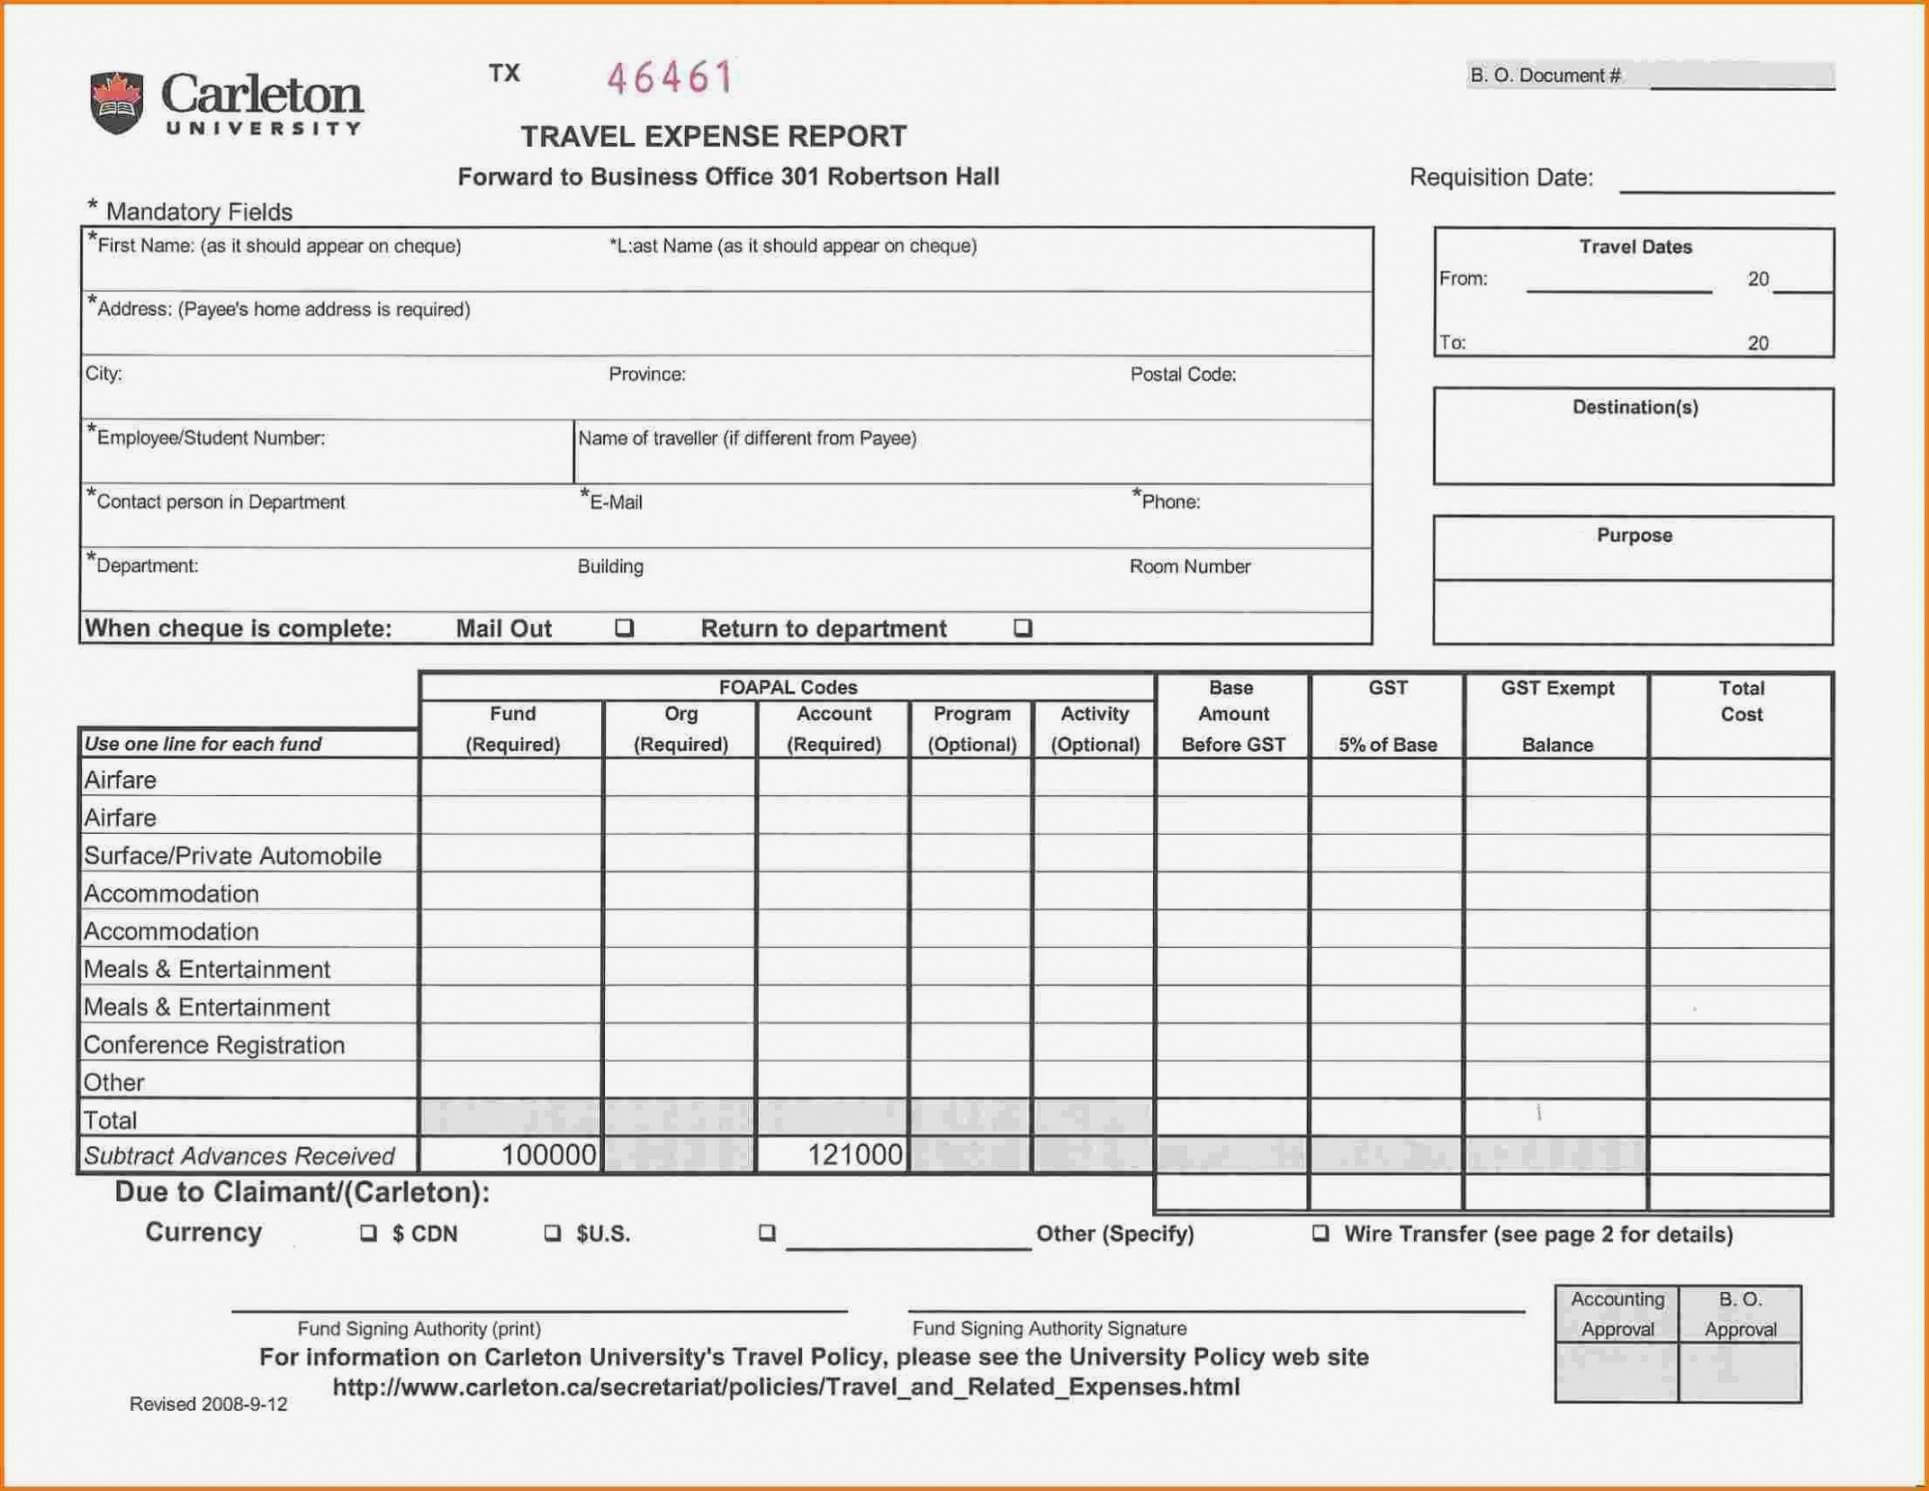 Printable Air Balance Report Form Mersnproforum Form Regarding Air Balance Report Template